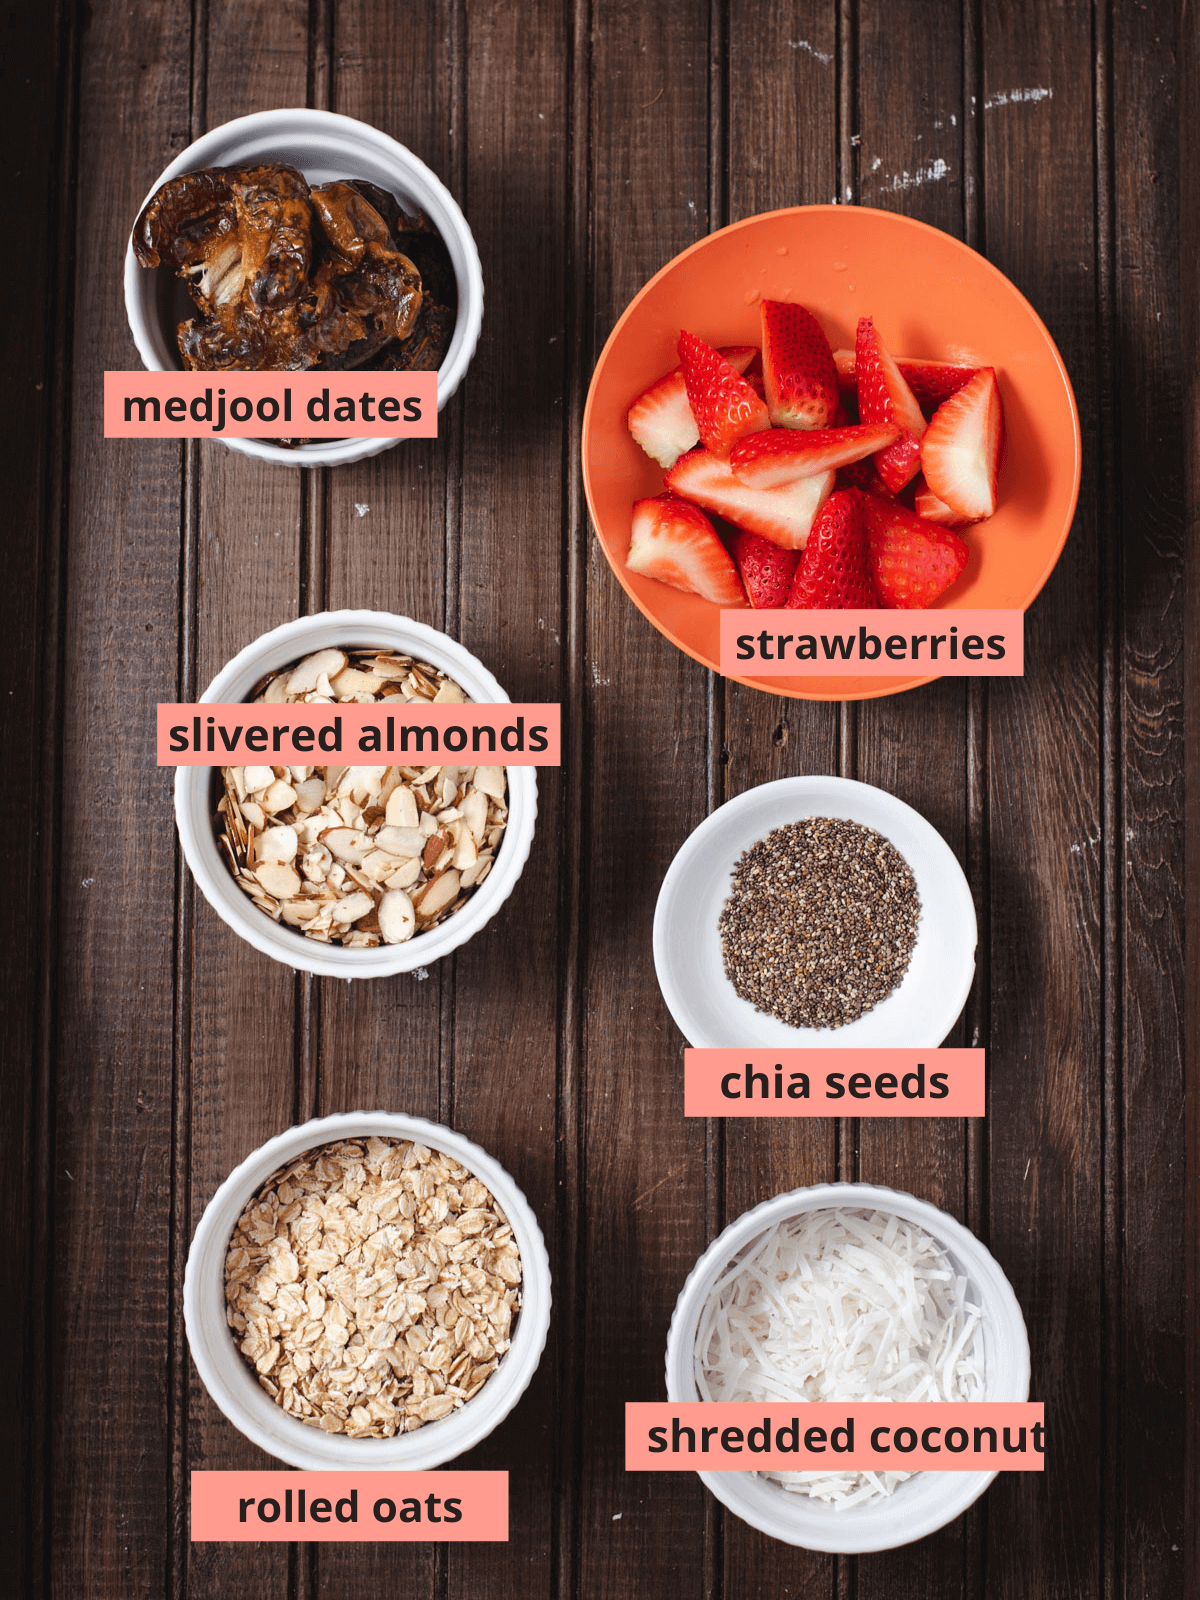 Labeled ingredients used to make energy balls